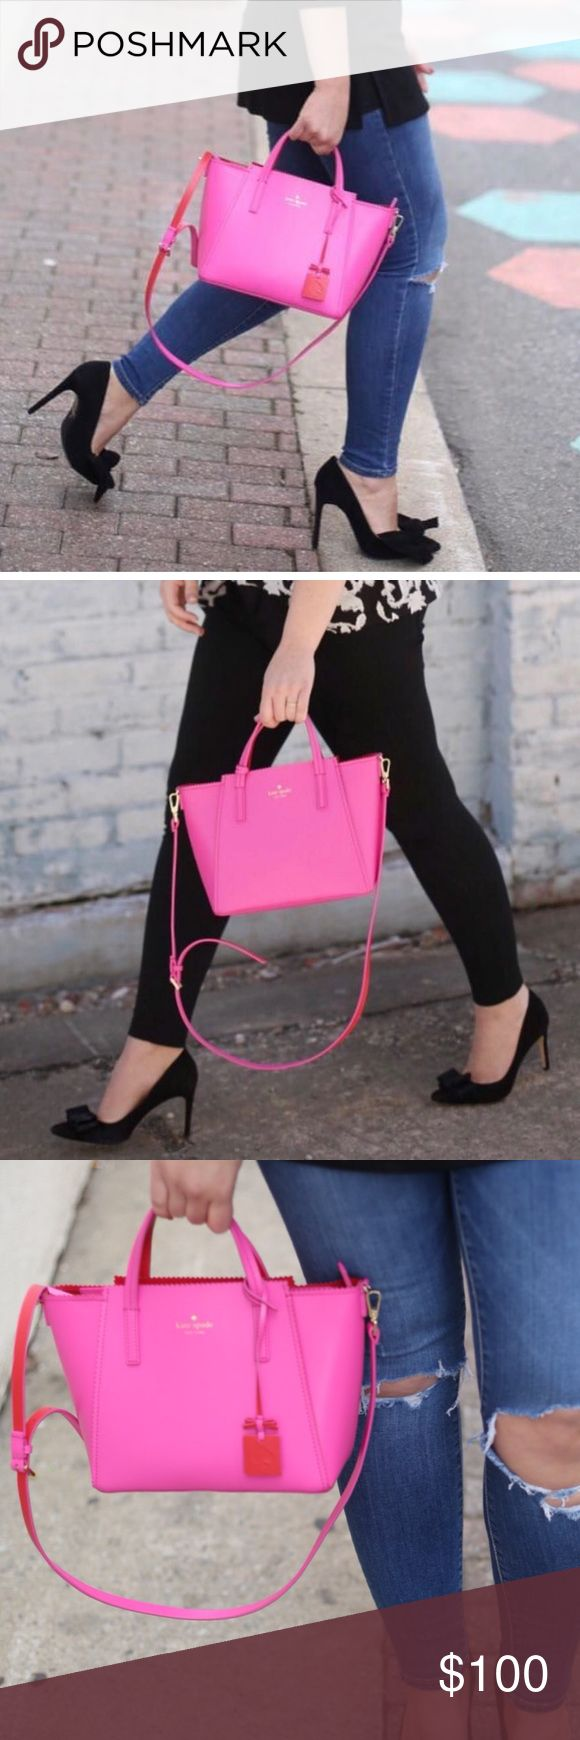 Pink Kate Spade Tote This gently used Kate Spade is the perfect pink bag to add a spring pop of color to your wardrobe! kate spade Bags Totes